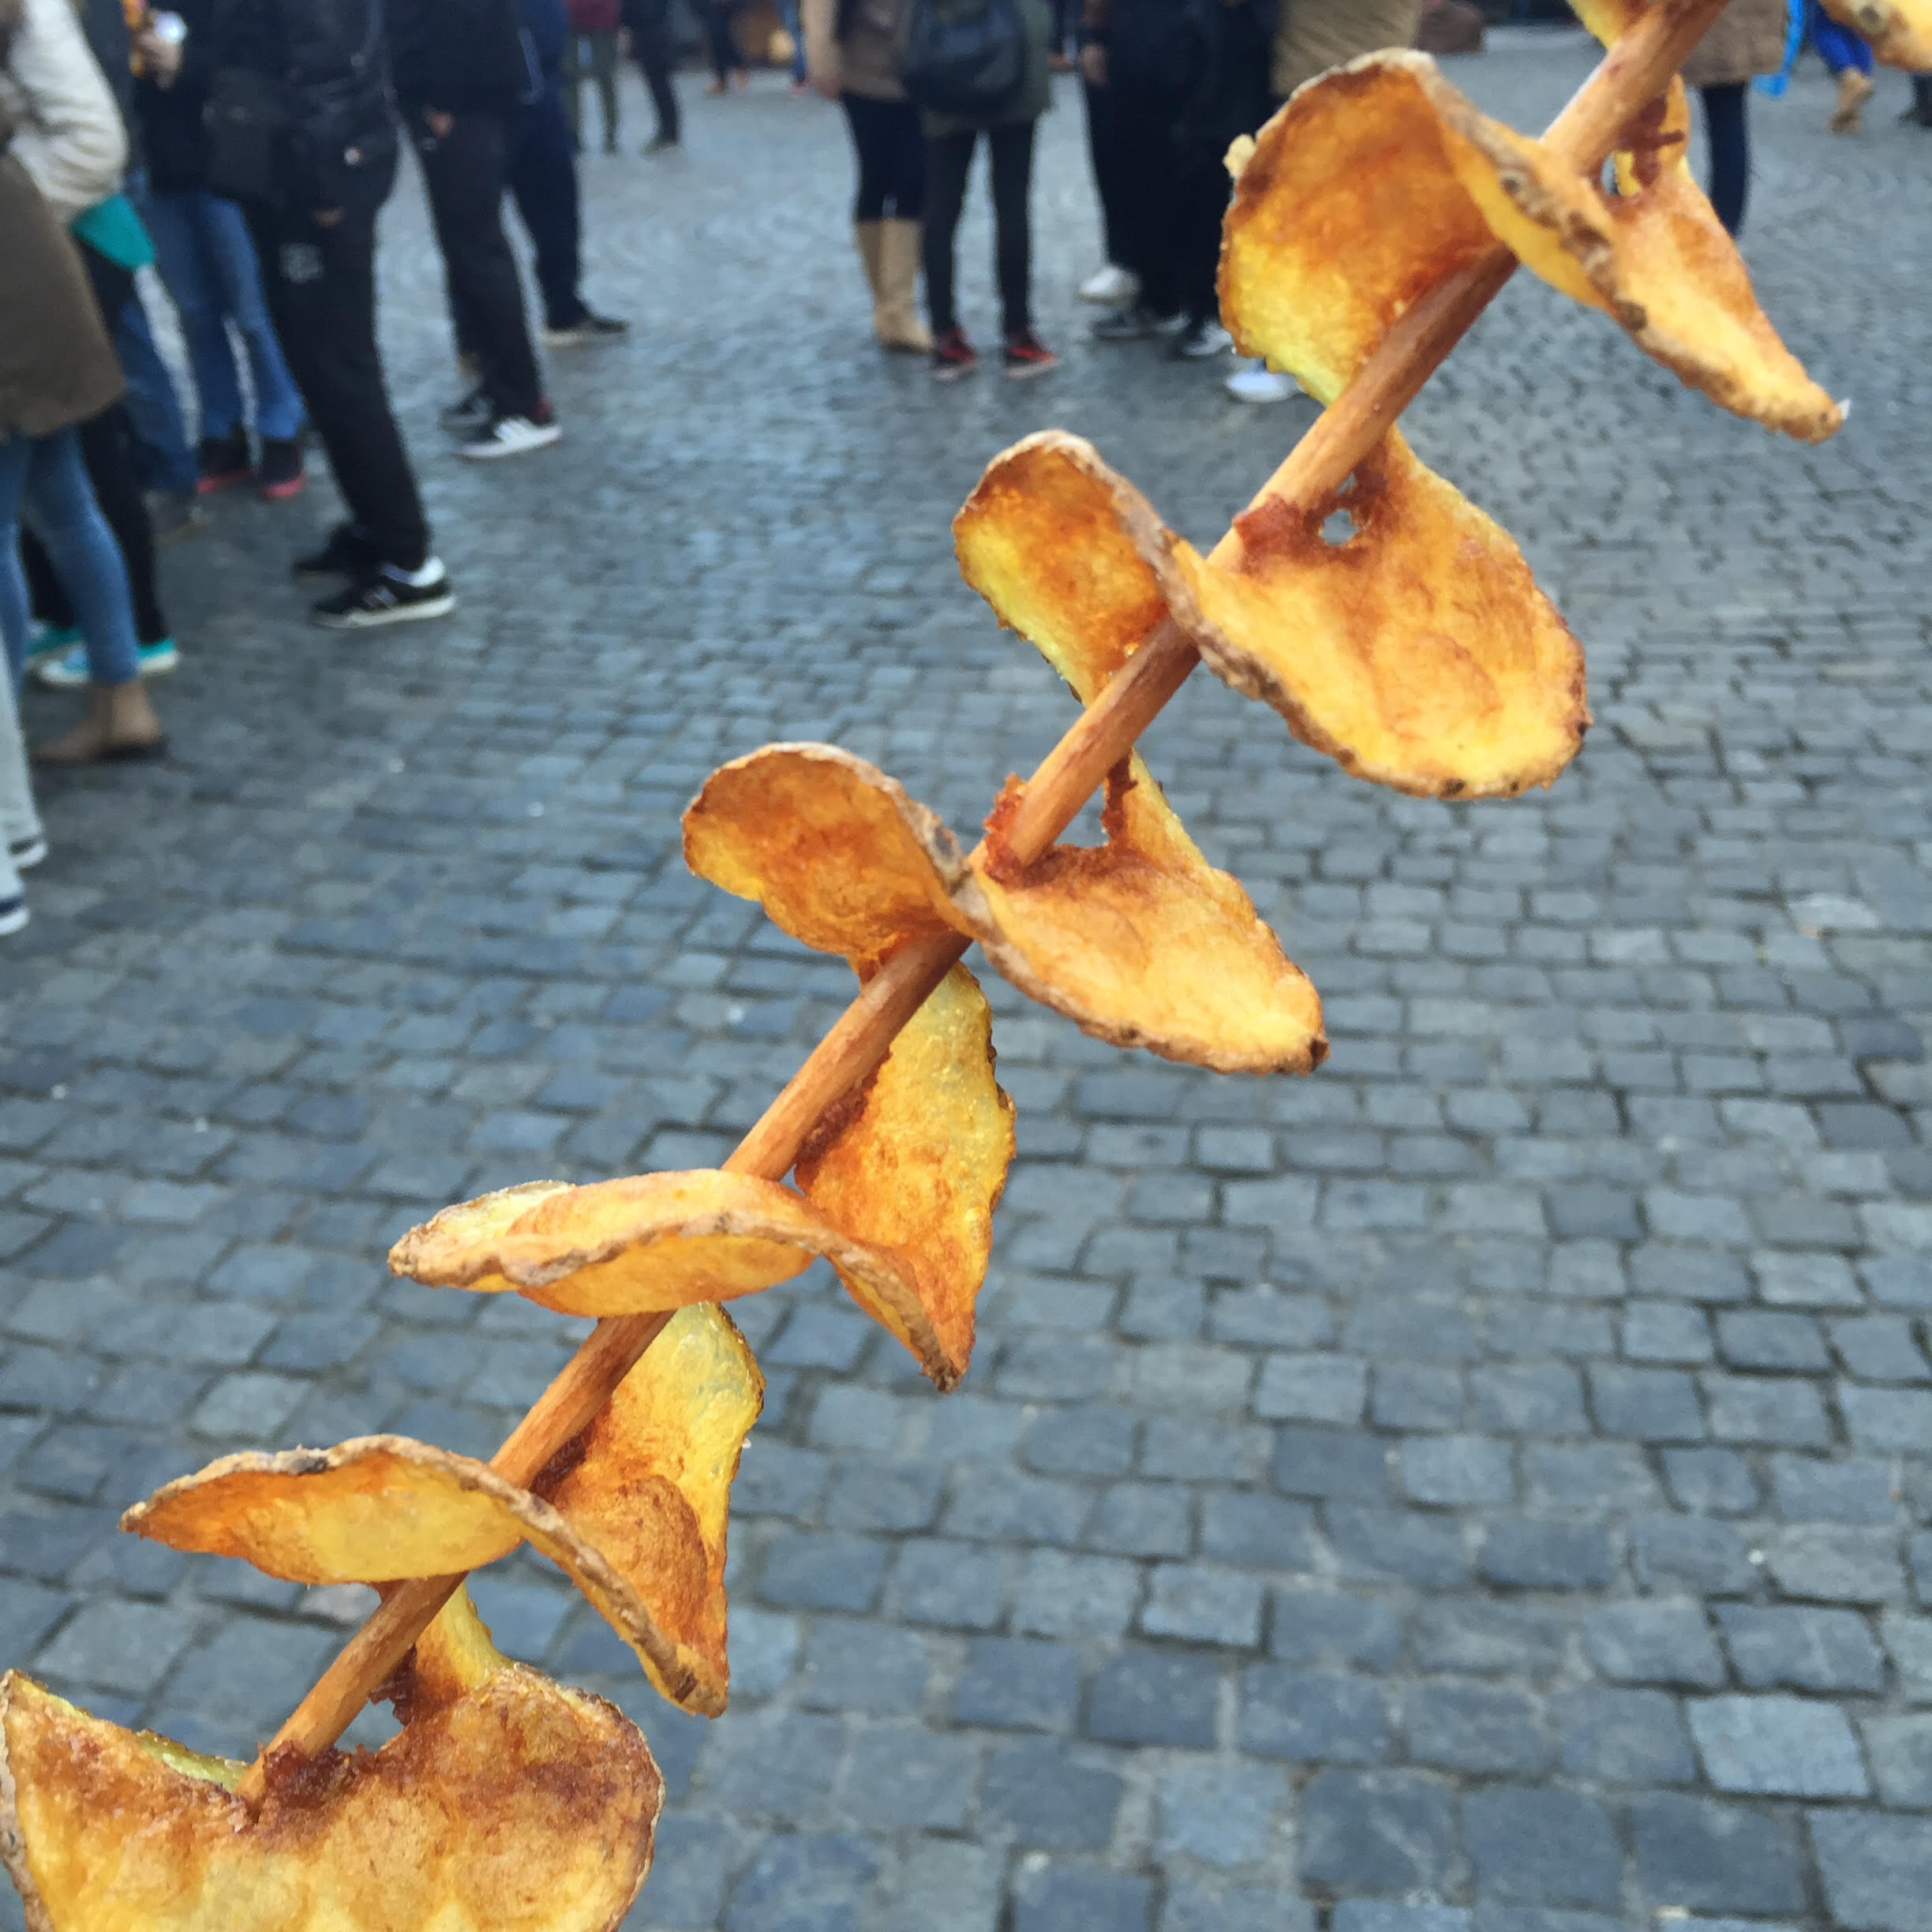 Potato chips on a stick, sold at the Easter markets